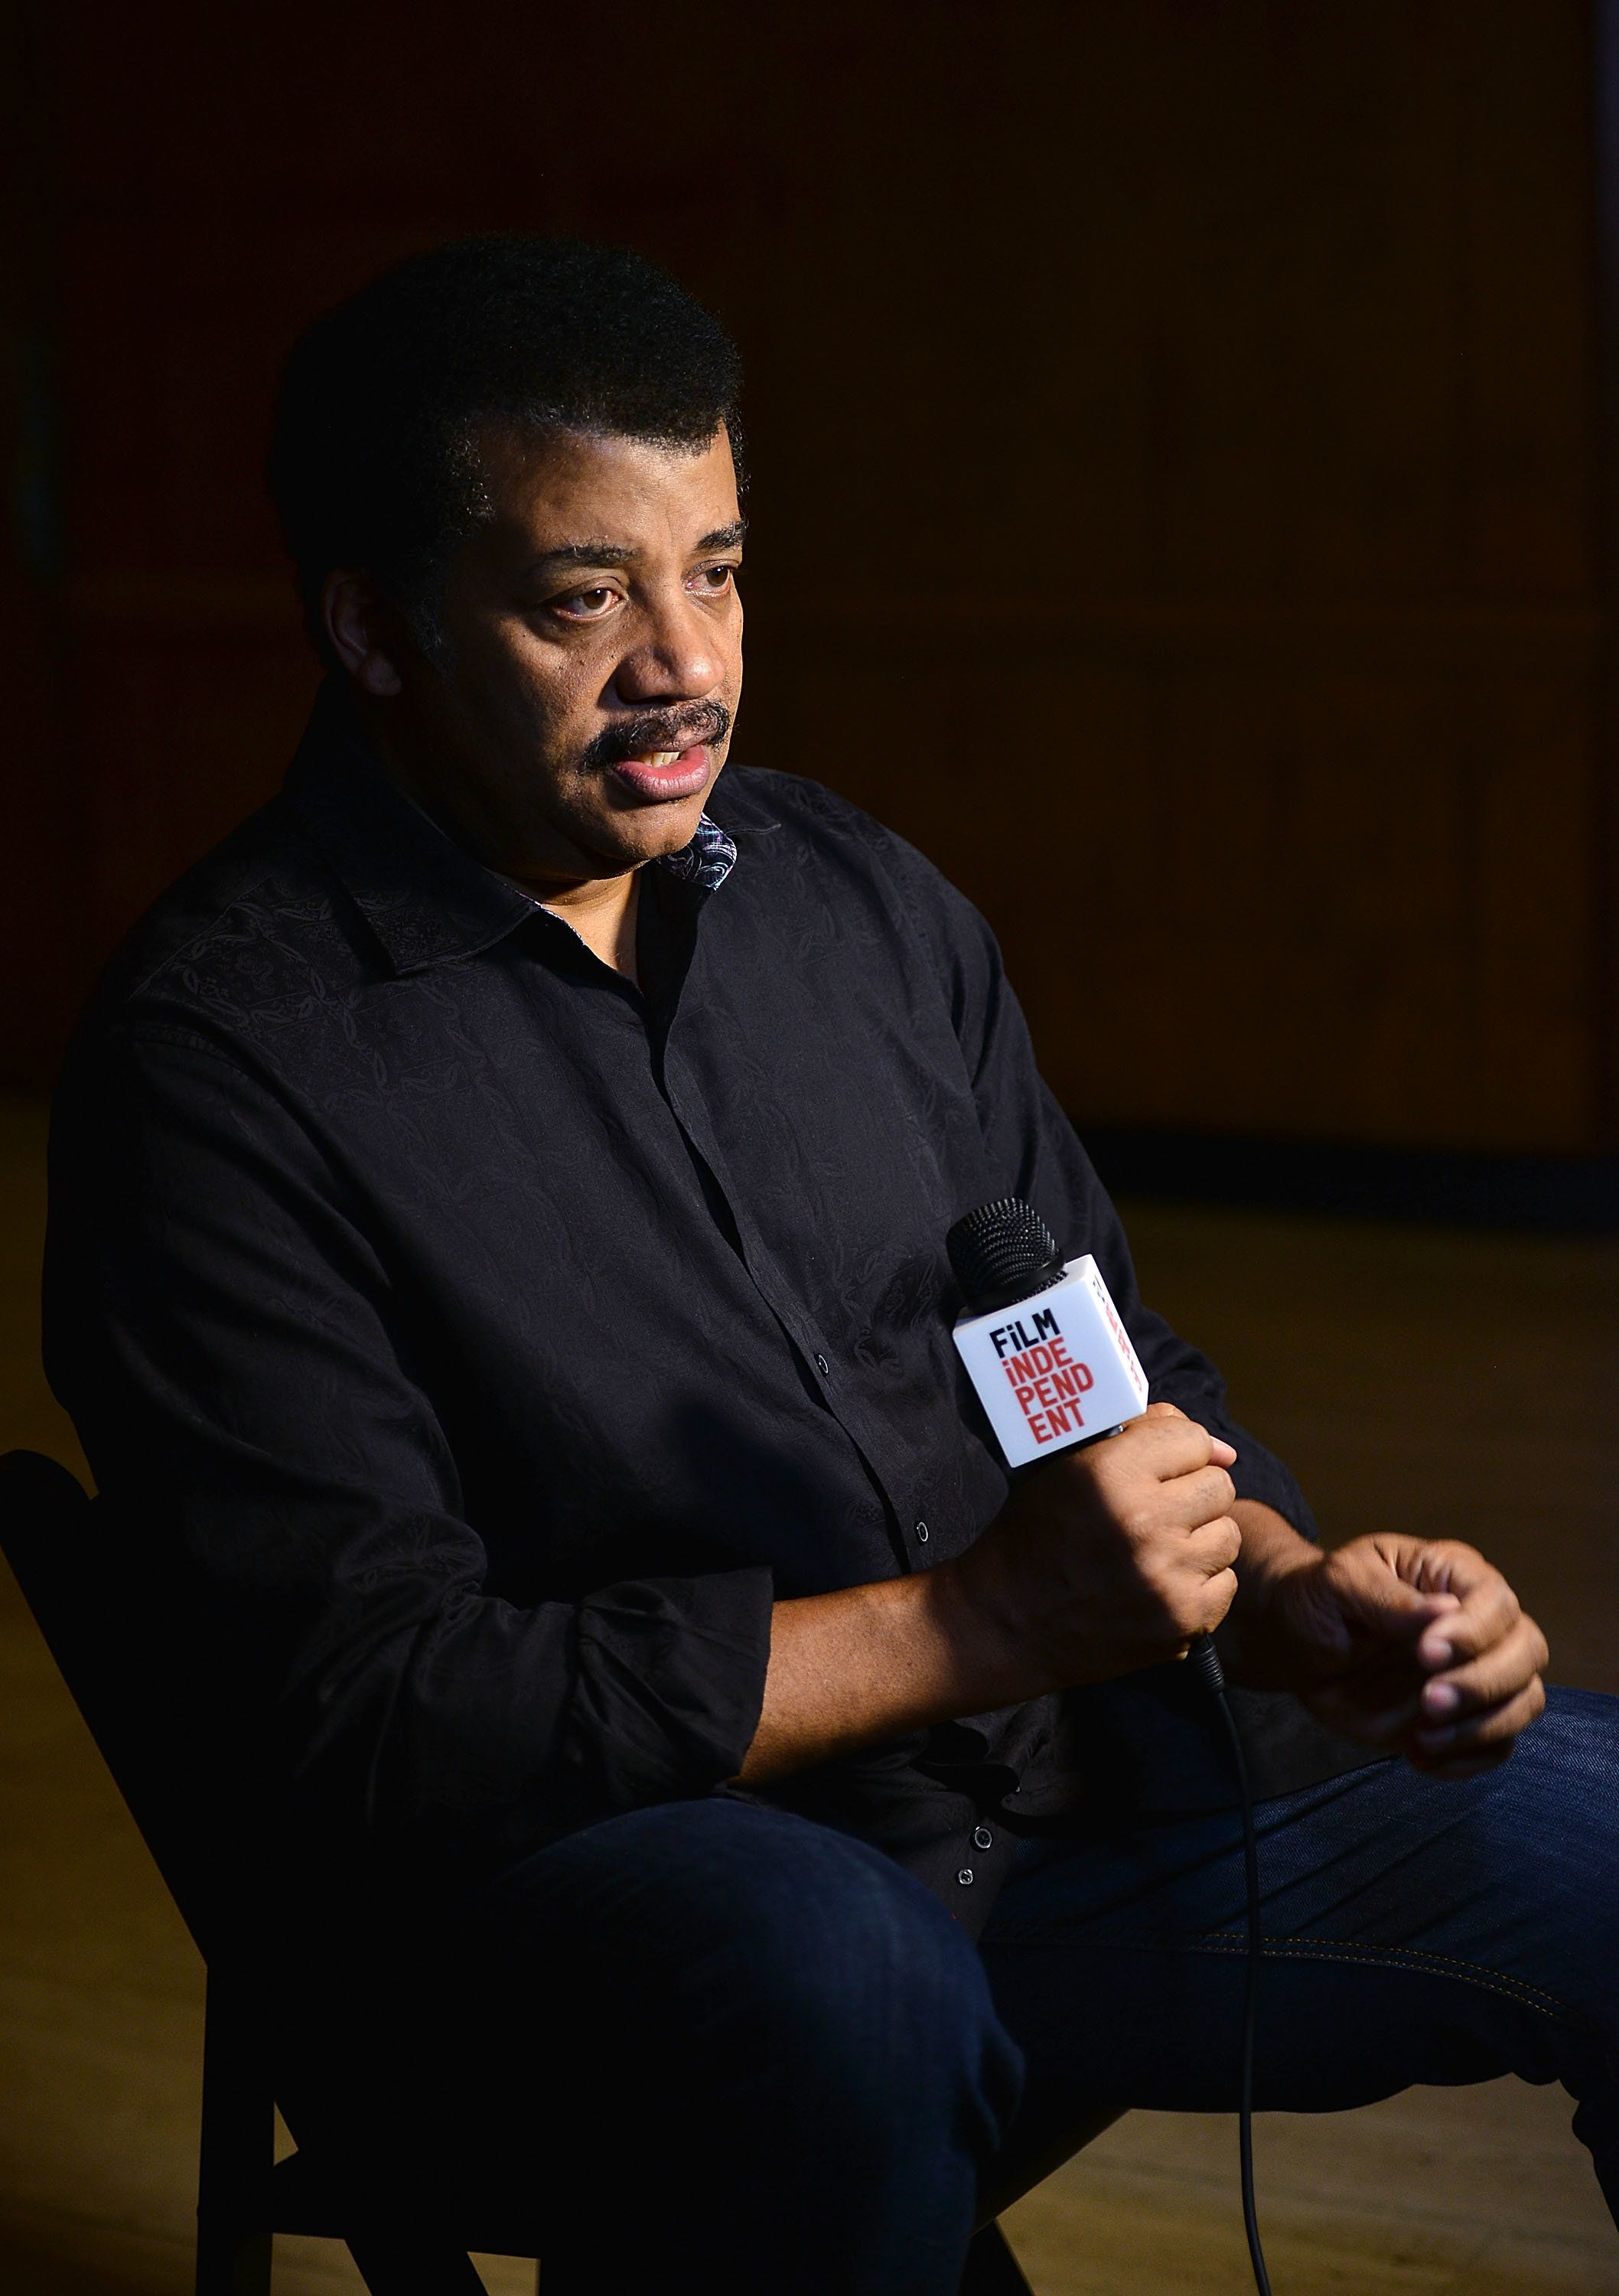 In A Crowded Theater, She Accused Neil DeGrasse Tyson Of Rape. Eight Years Later, Her Story Is